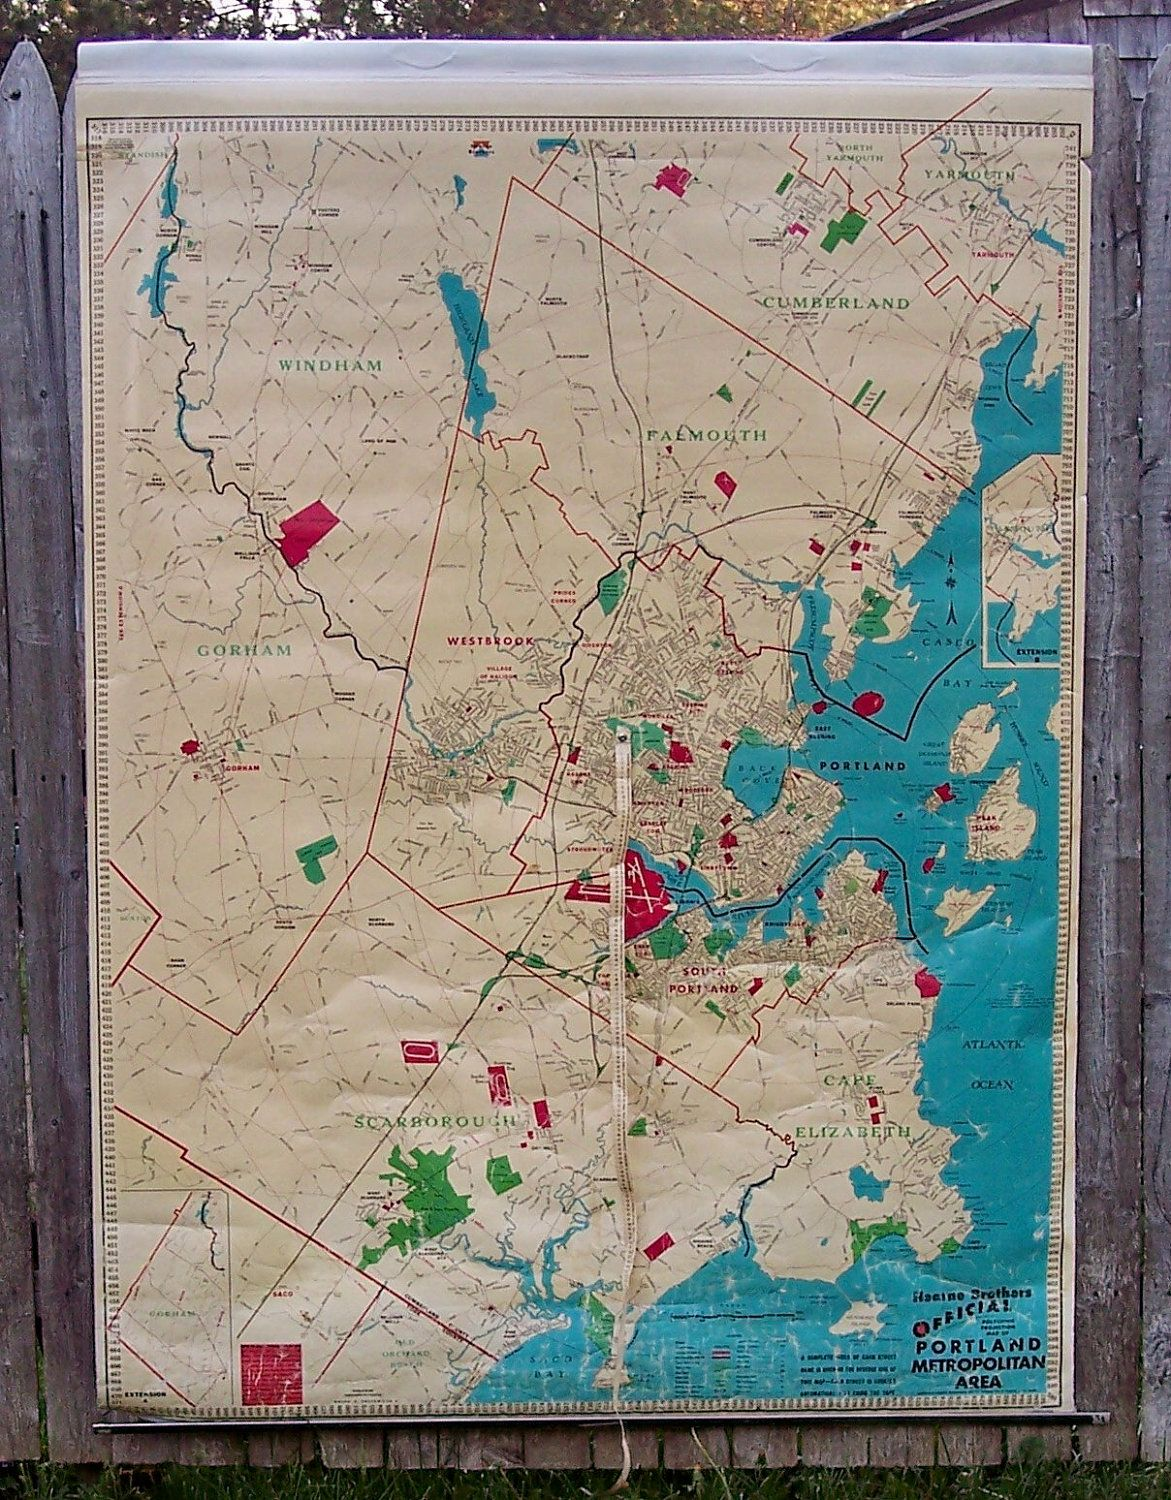 Vintage Pull Down Map of Portland Maine Large Roll up Hearne